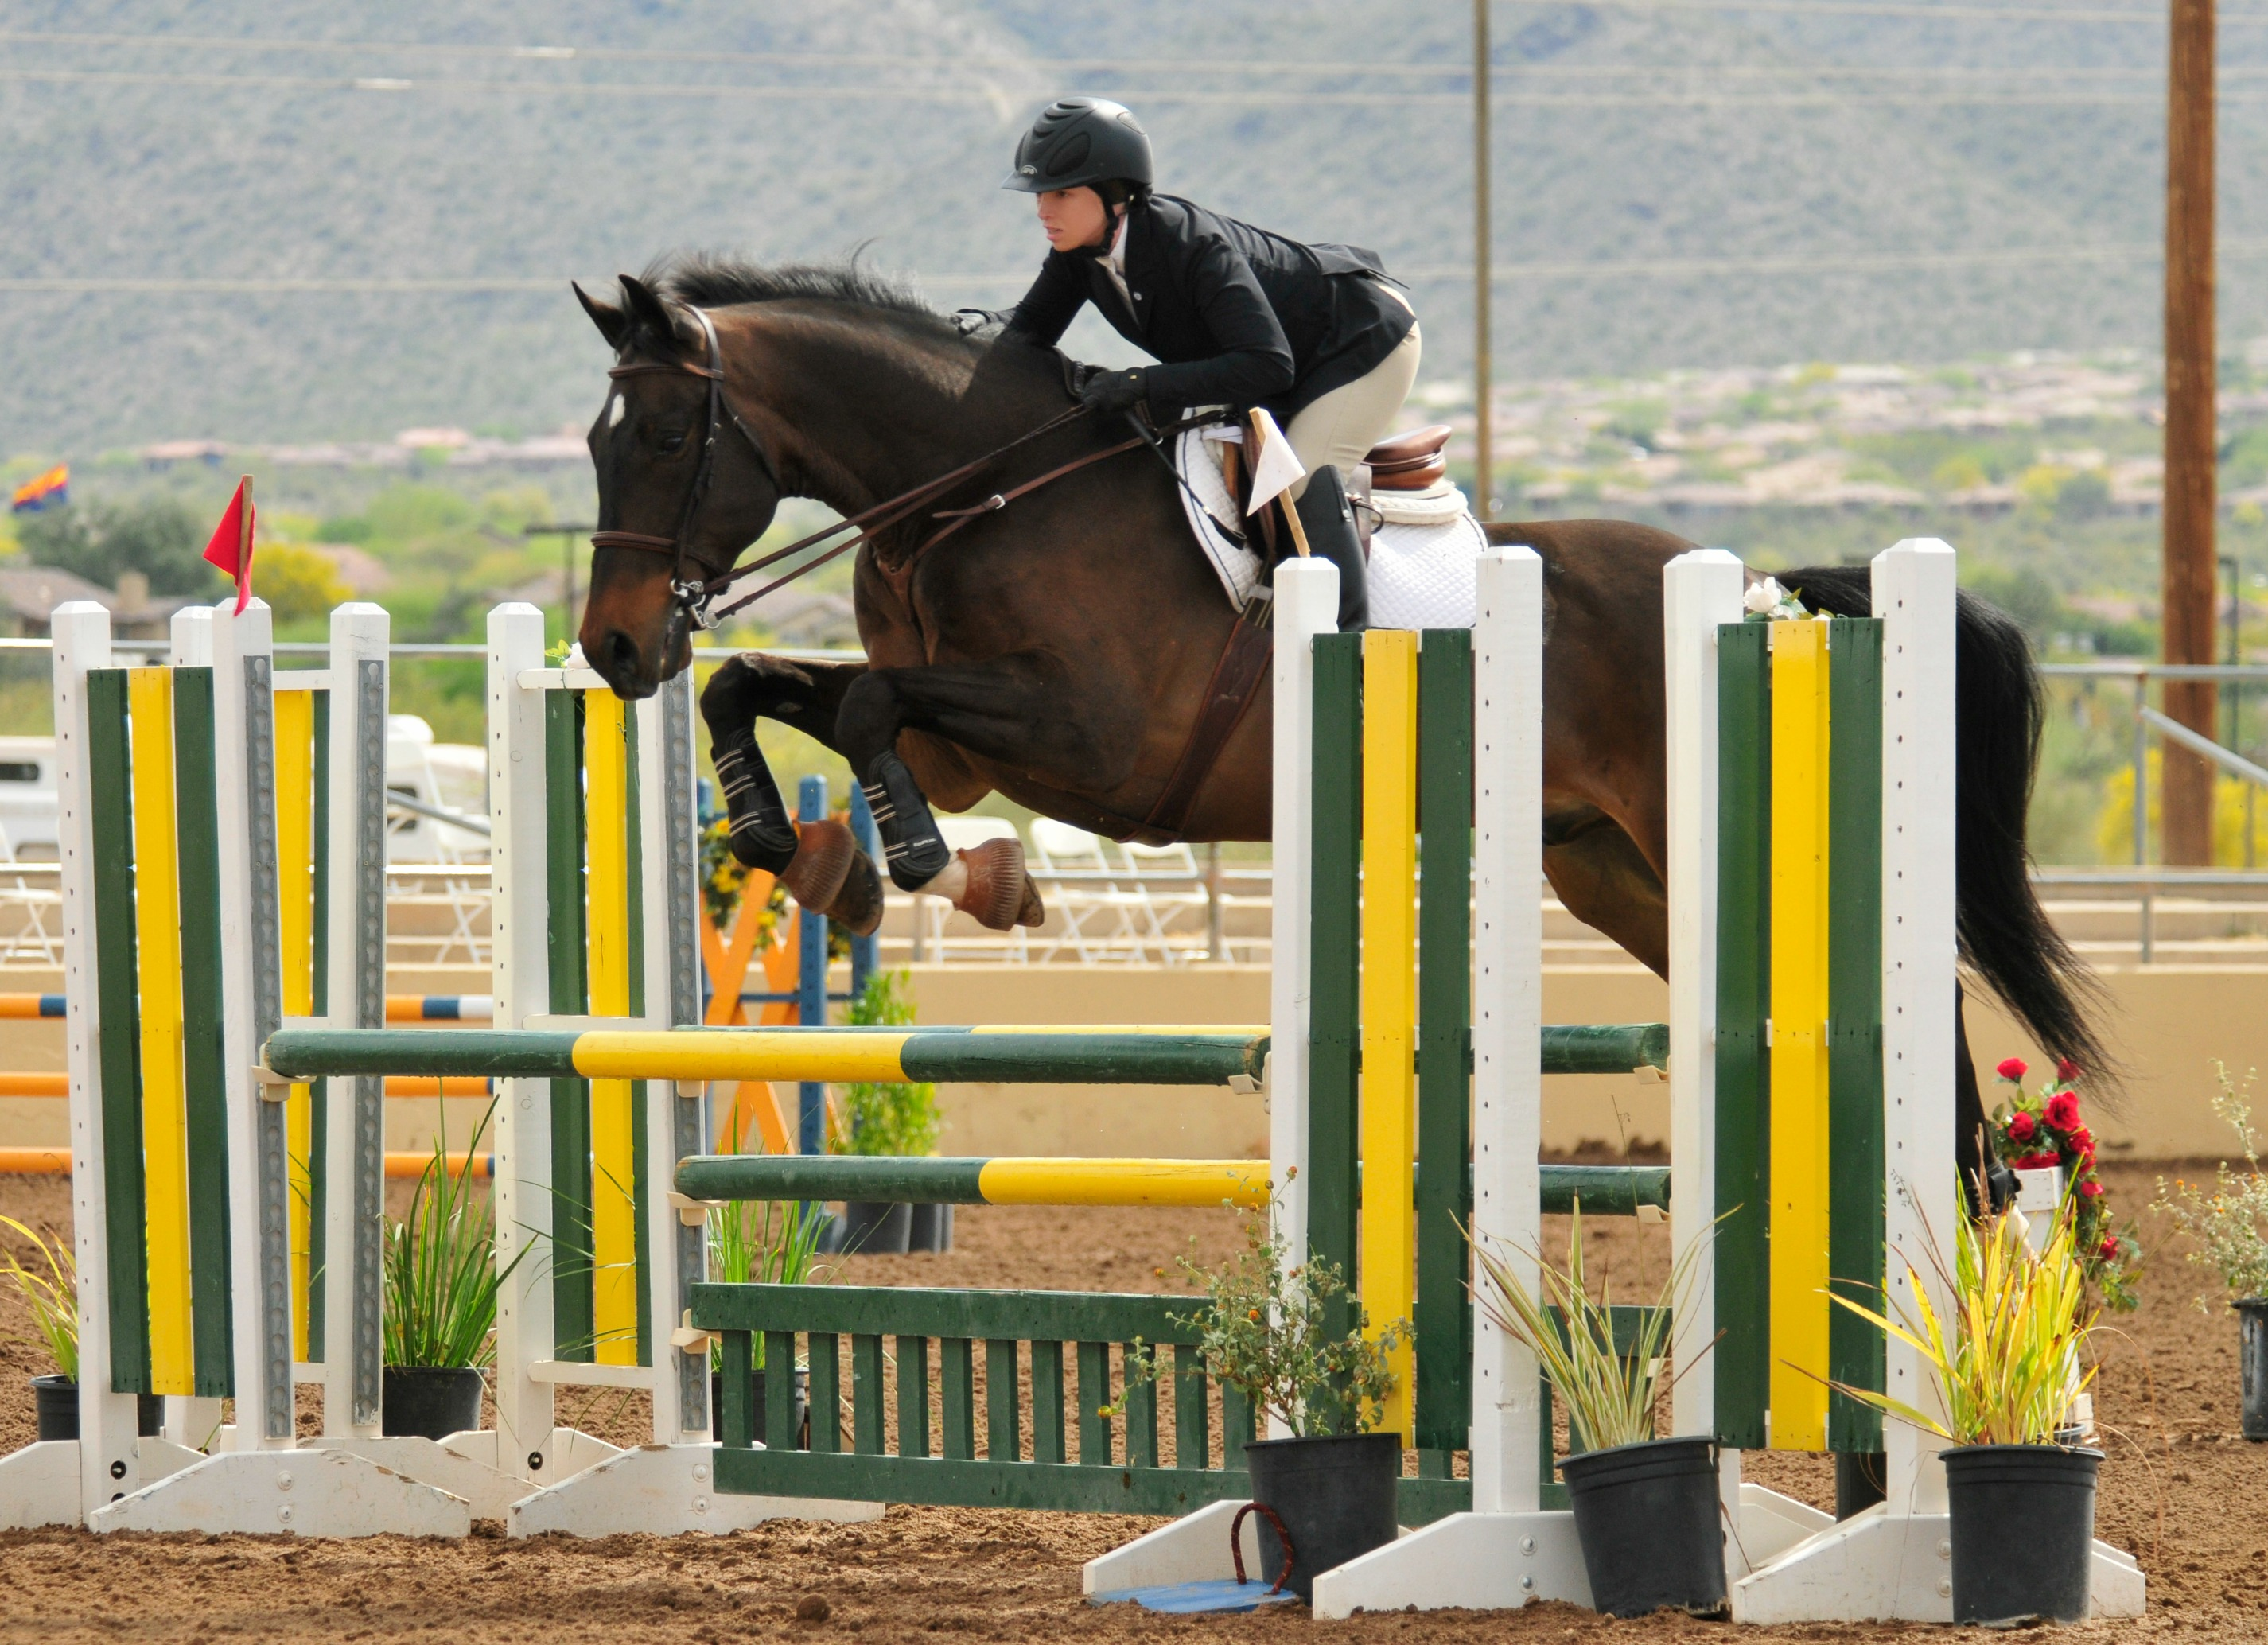 Lexi & Dante in the Low A/As